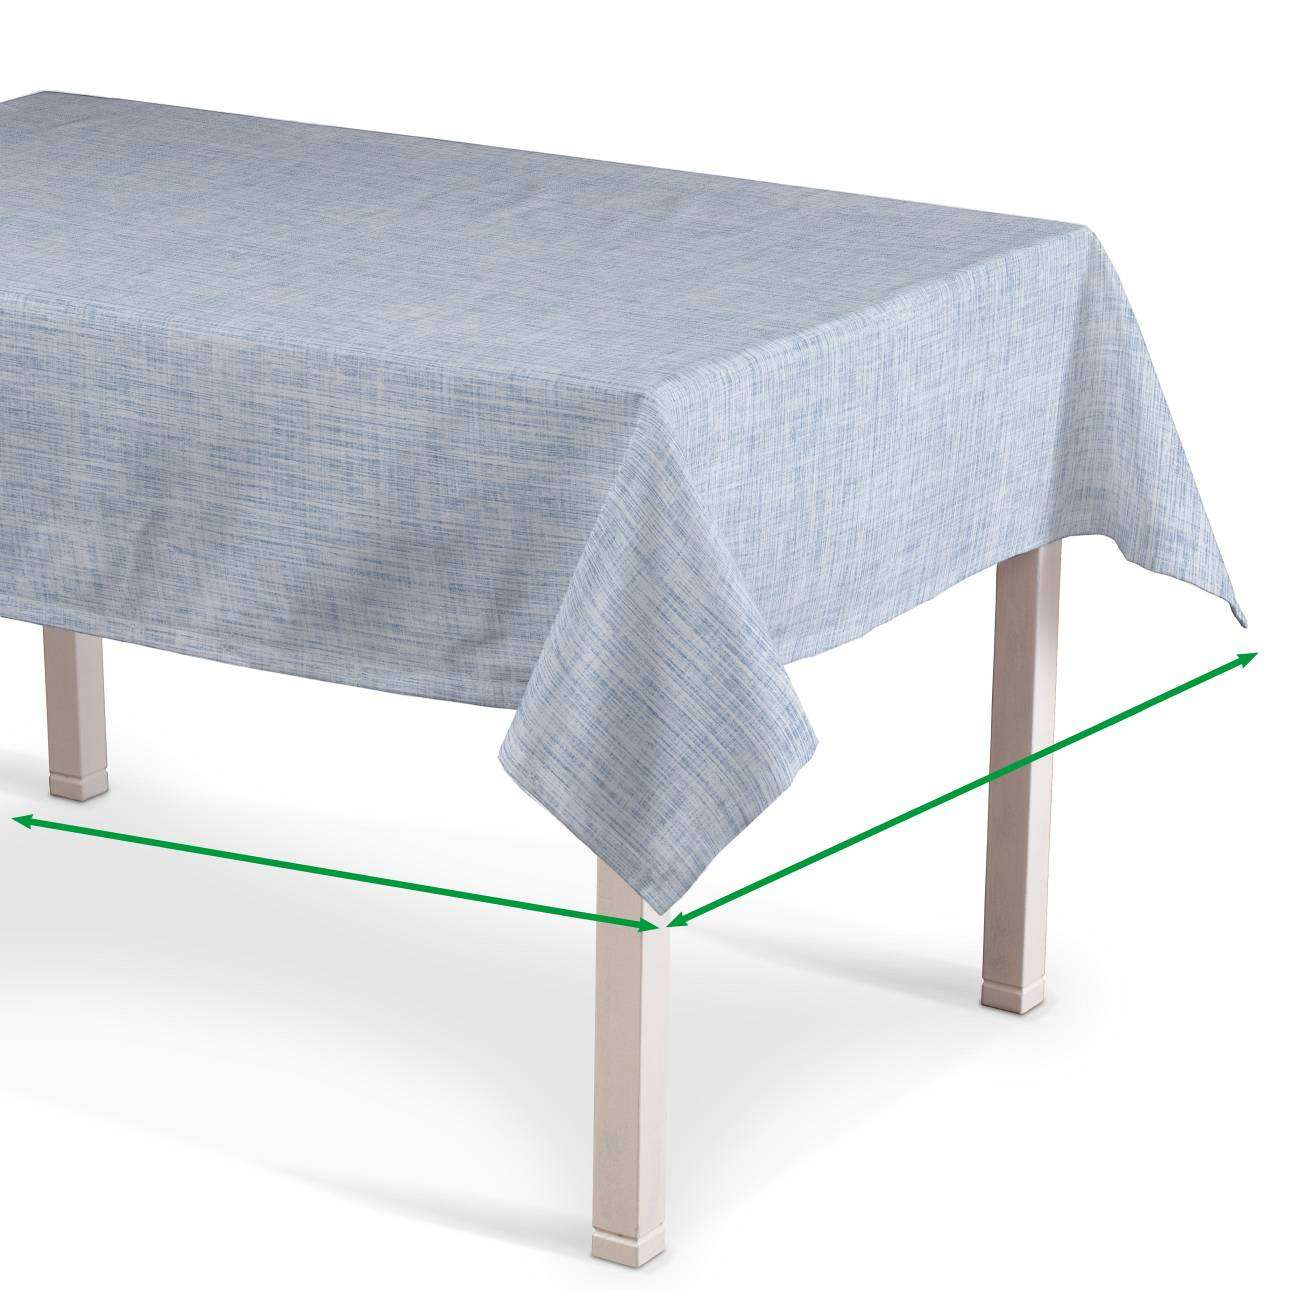 Rectangular tablecloth in collection Aquarelle, fabric: 140-74